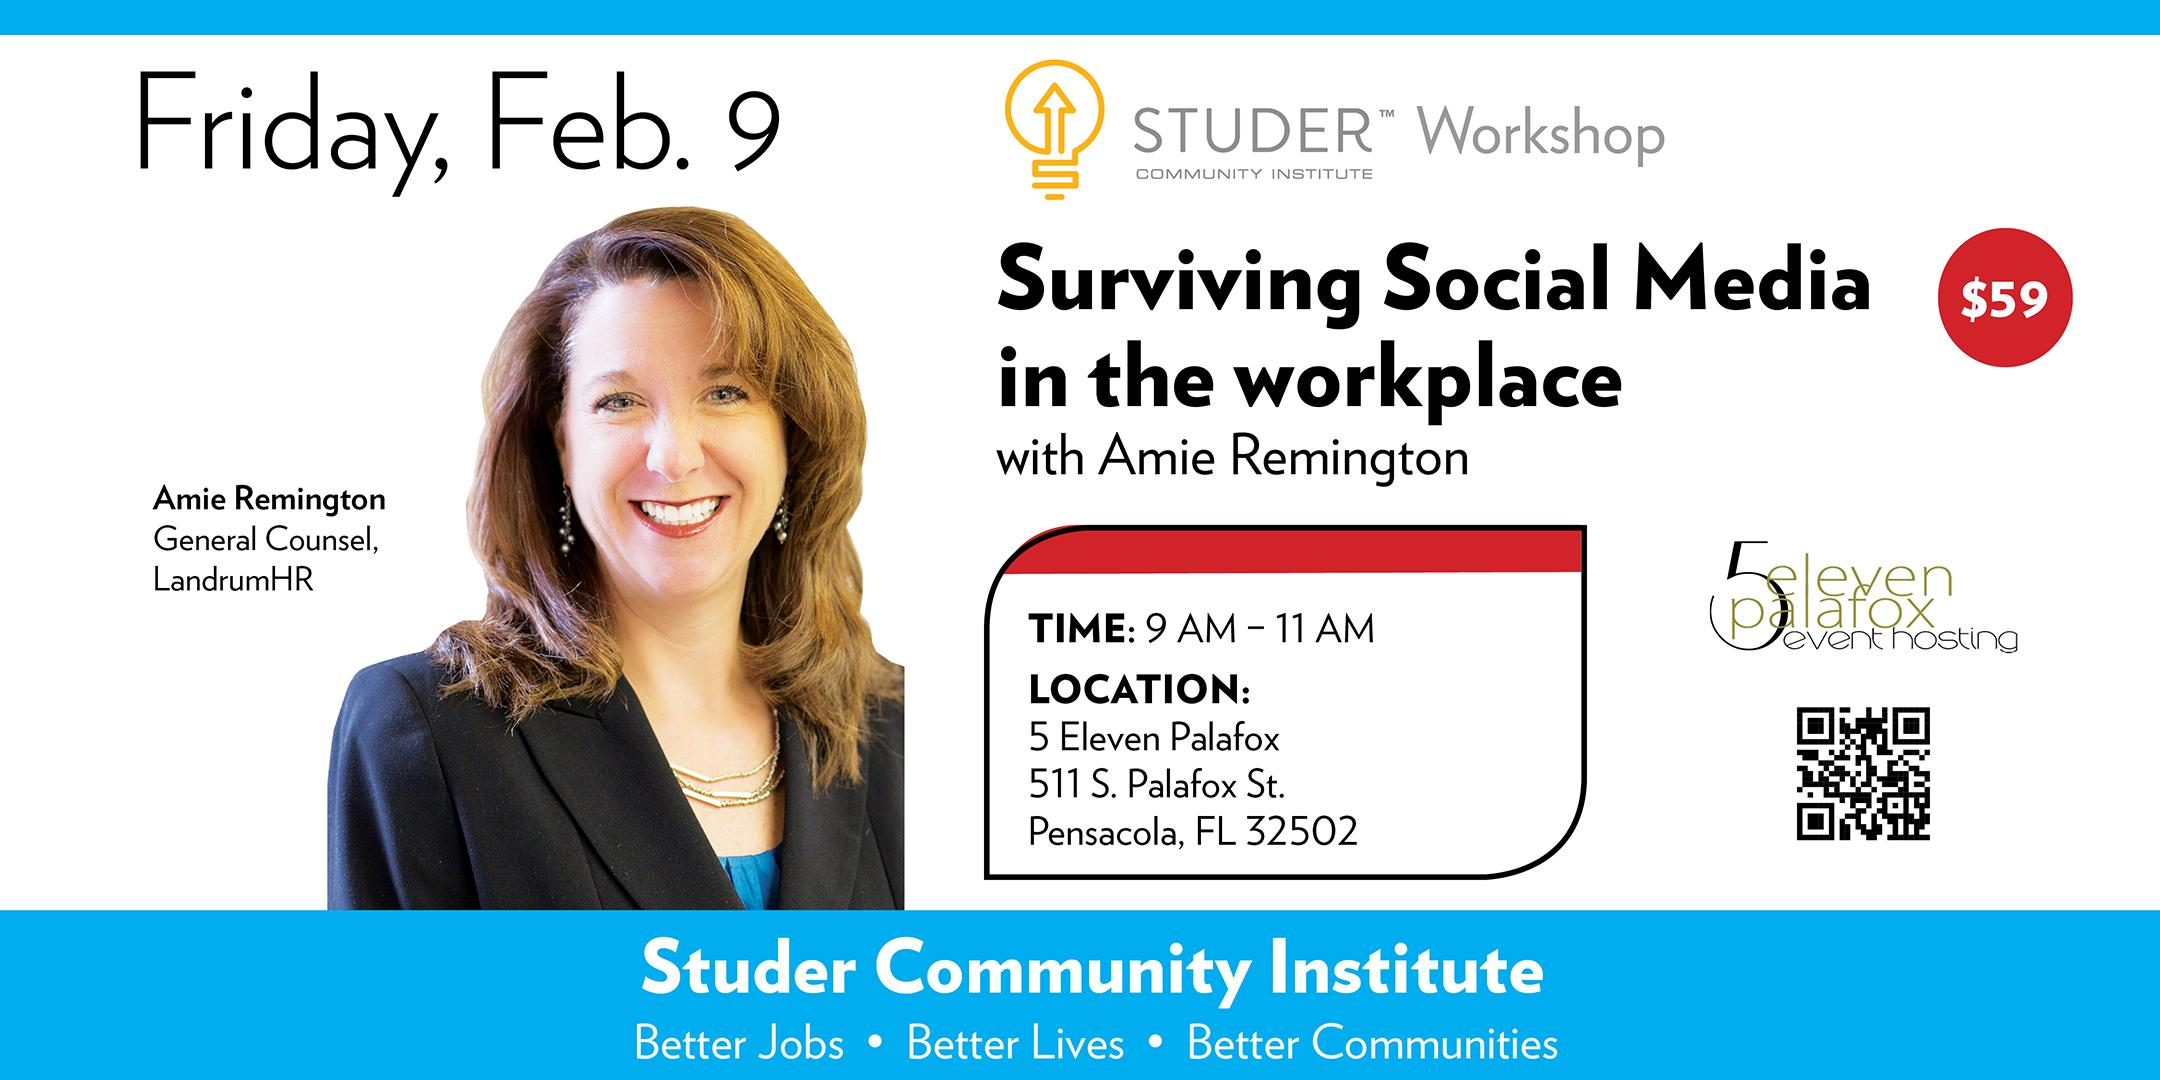 Amie Remington - Surviving Social Media in the Workplace Event Flyer